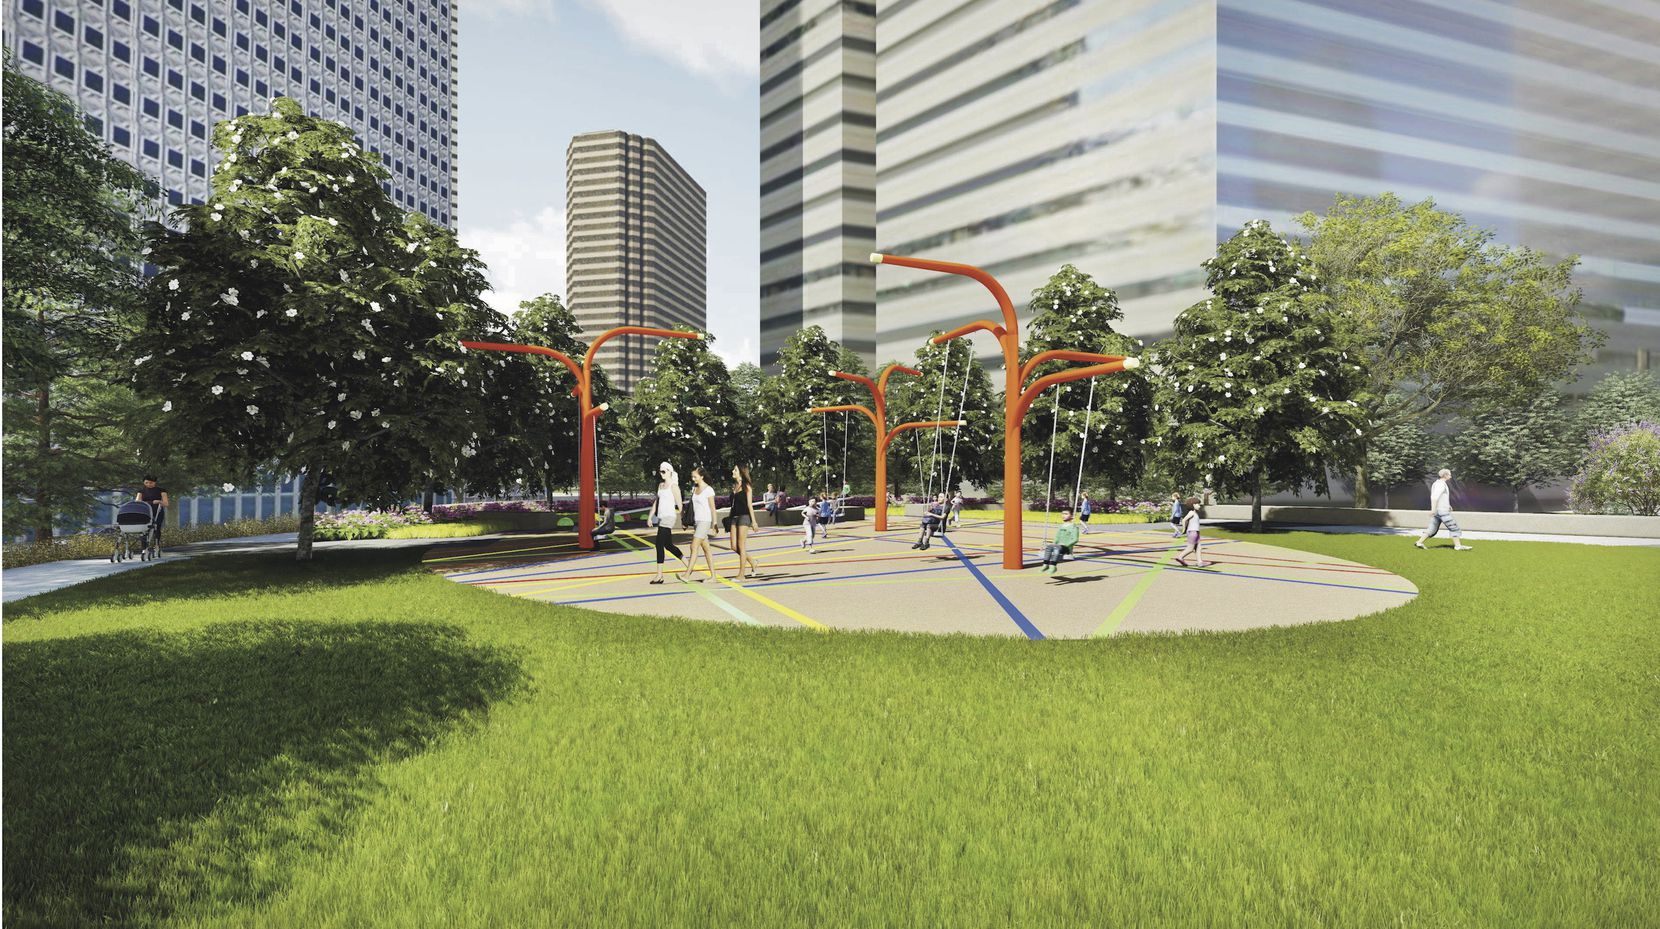 For $10 million you can name Pacific Plaza park will open in 2019.